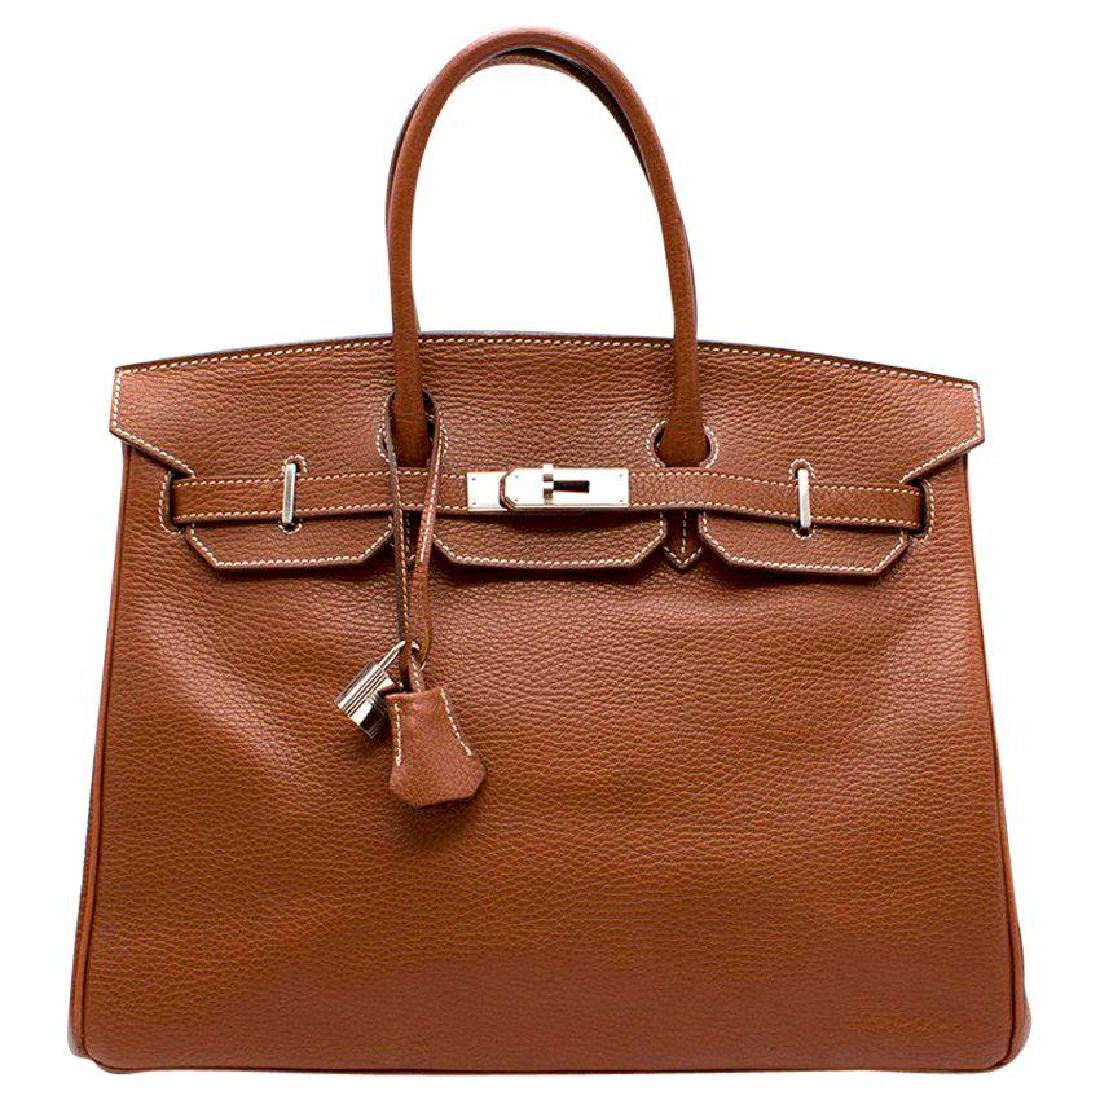 Hermes Miel Clemence Leather Birkin Bag 35cm